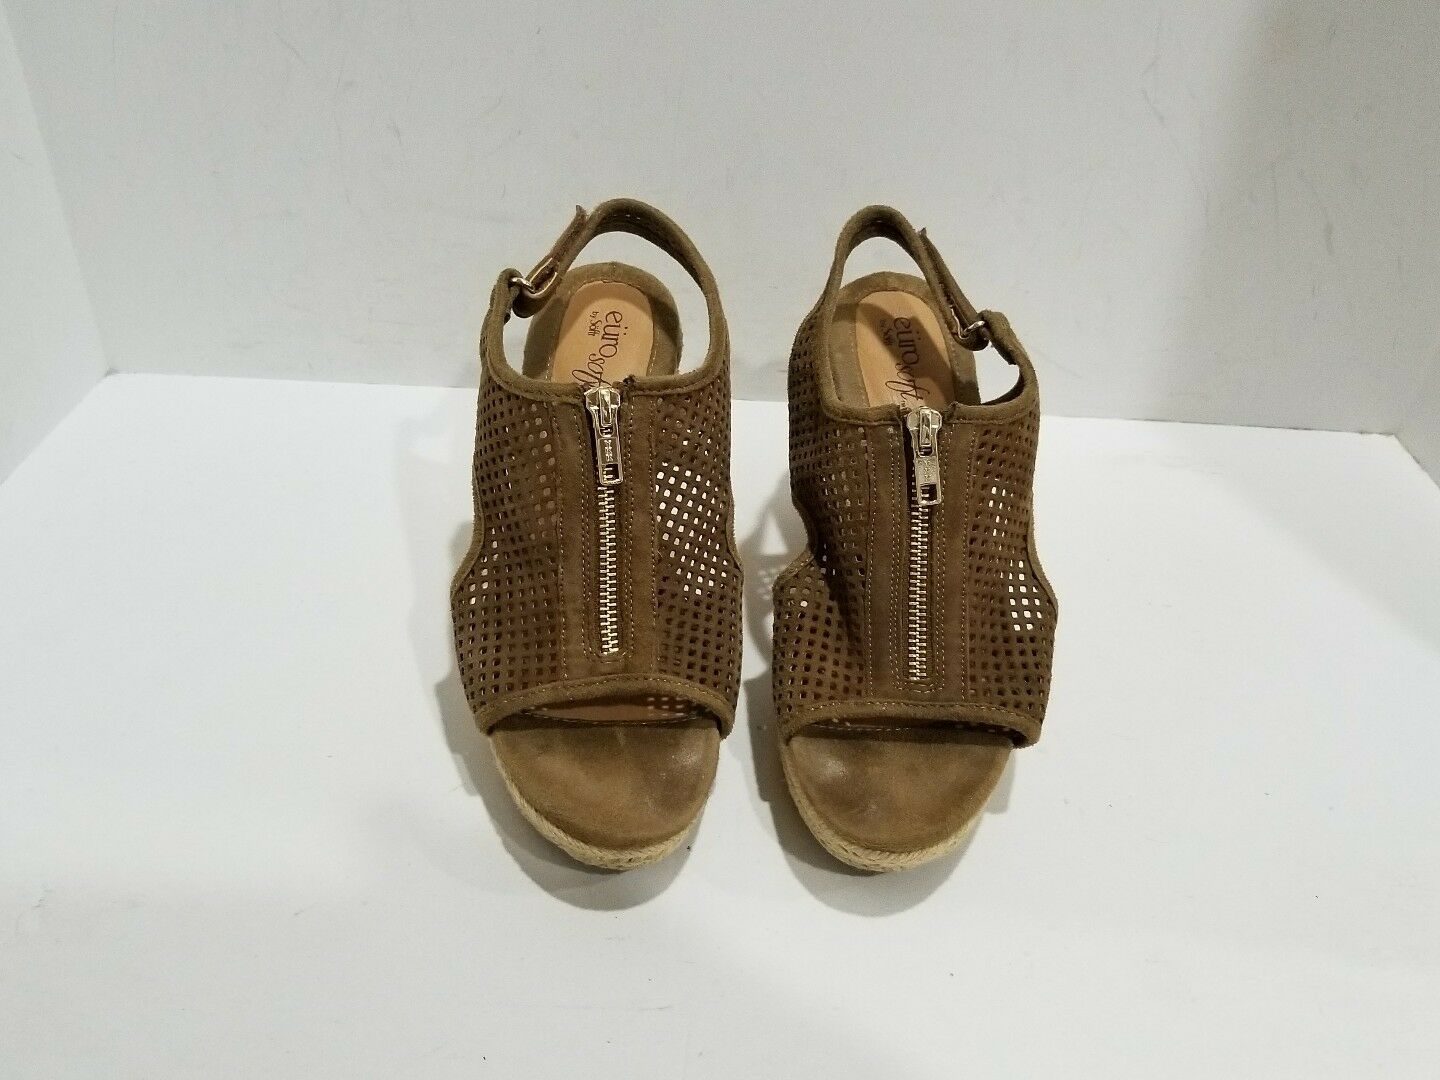 6376f37557 Euro Soft Womens Brown Suede M Wedge Sandals Size 7 M Suede 336b11 ...